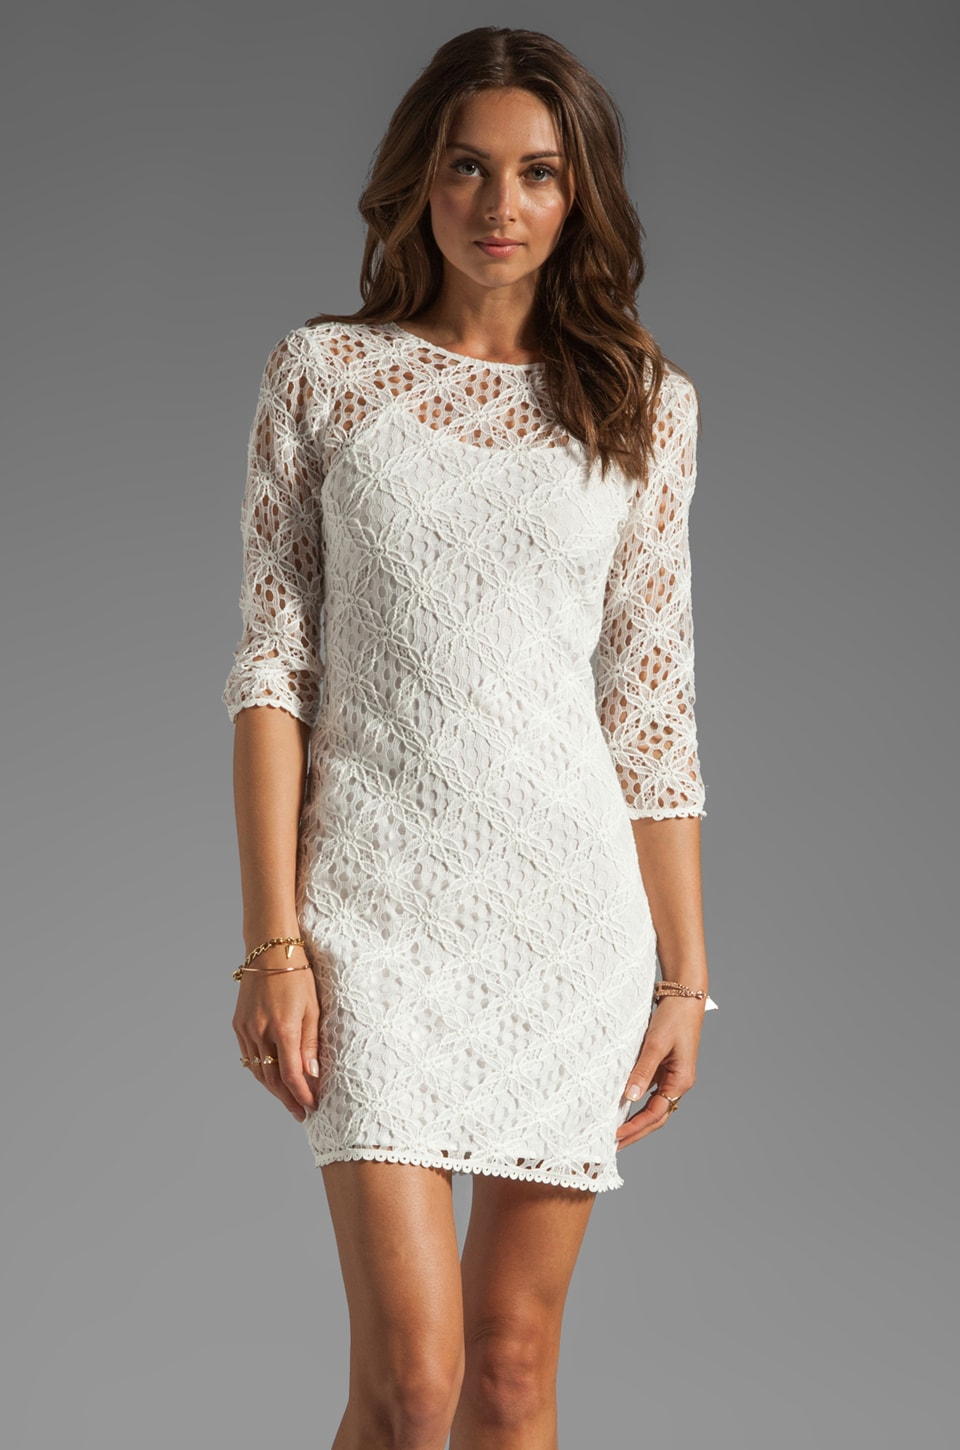 Dolce Vita Cat Crochet Lace Long Sleeve Dress in White